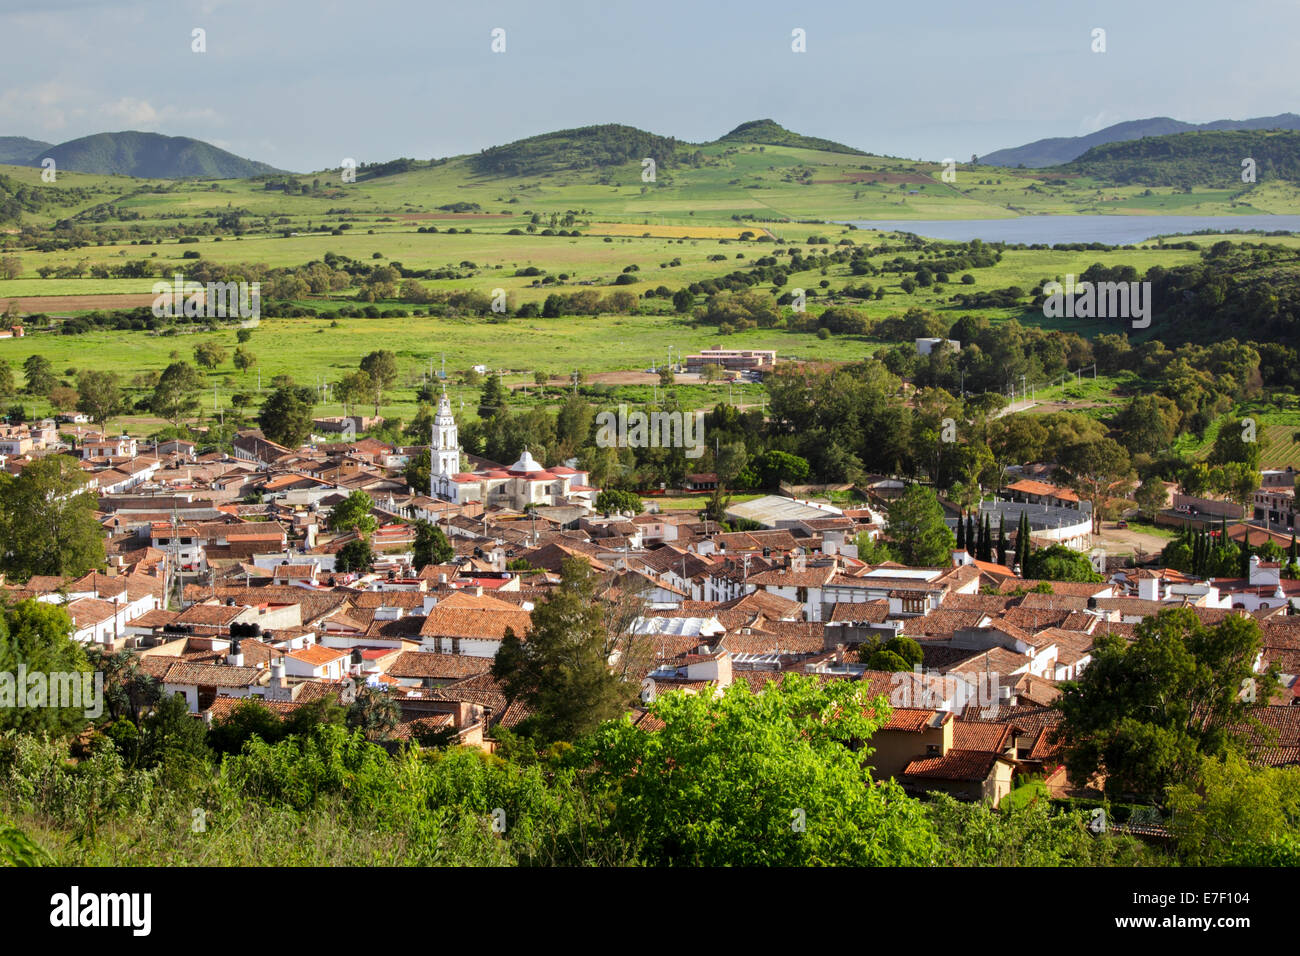 Tiled roofs and church of Tapalpa, Jalisco, Mexico. - Stock Image